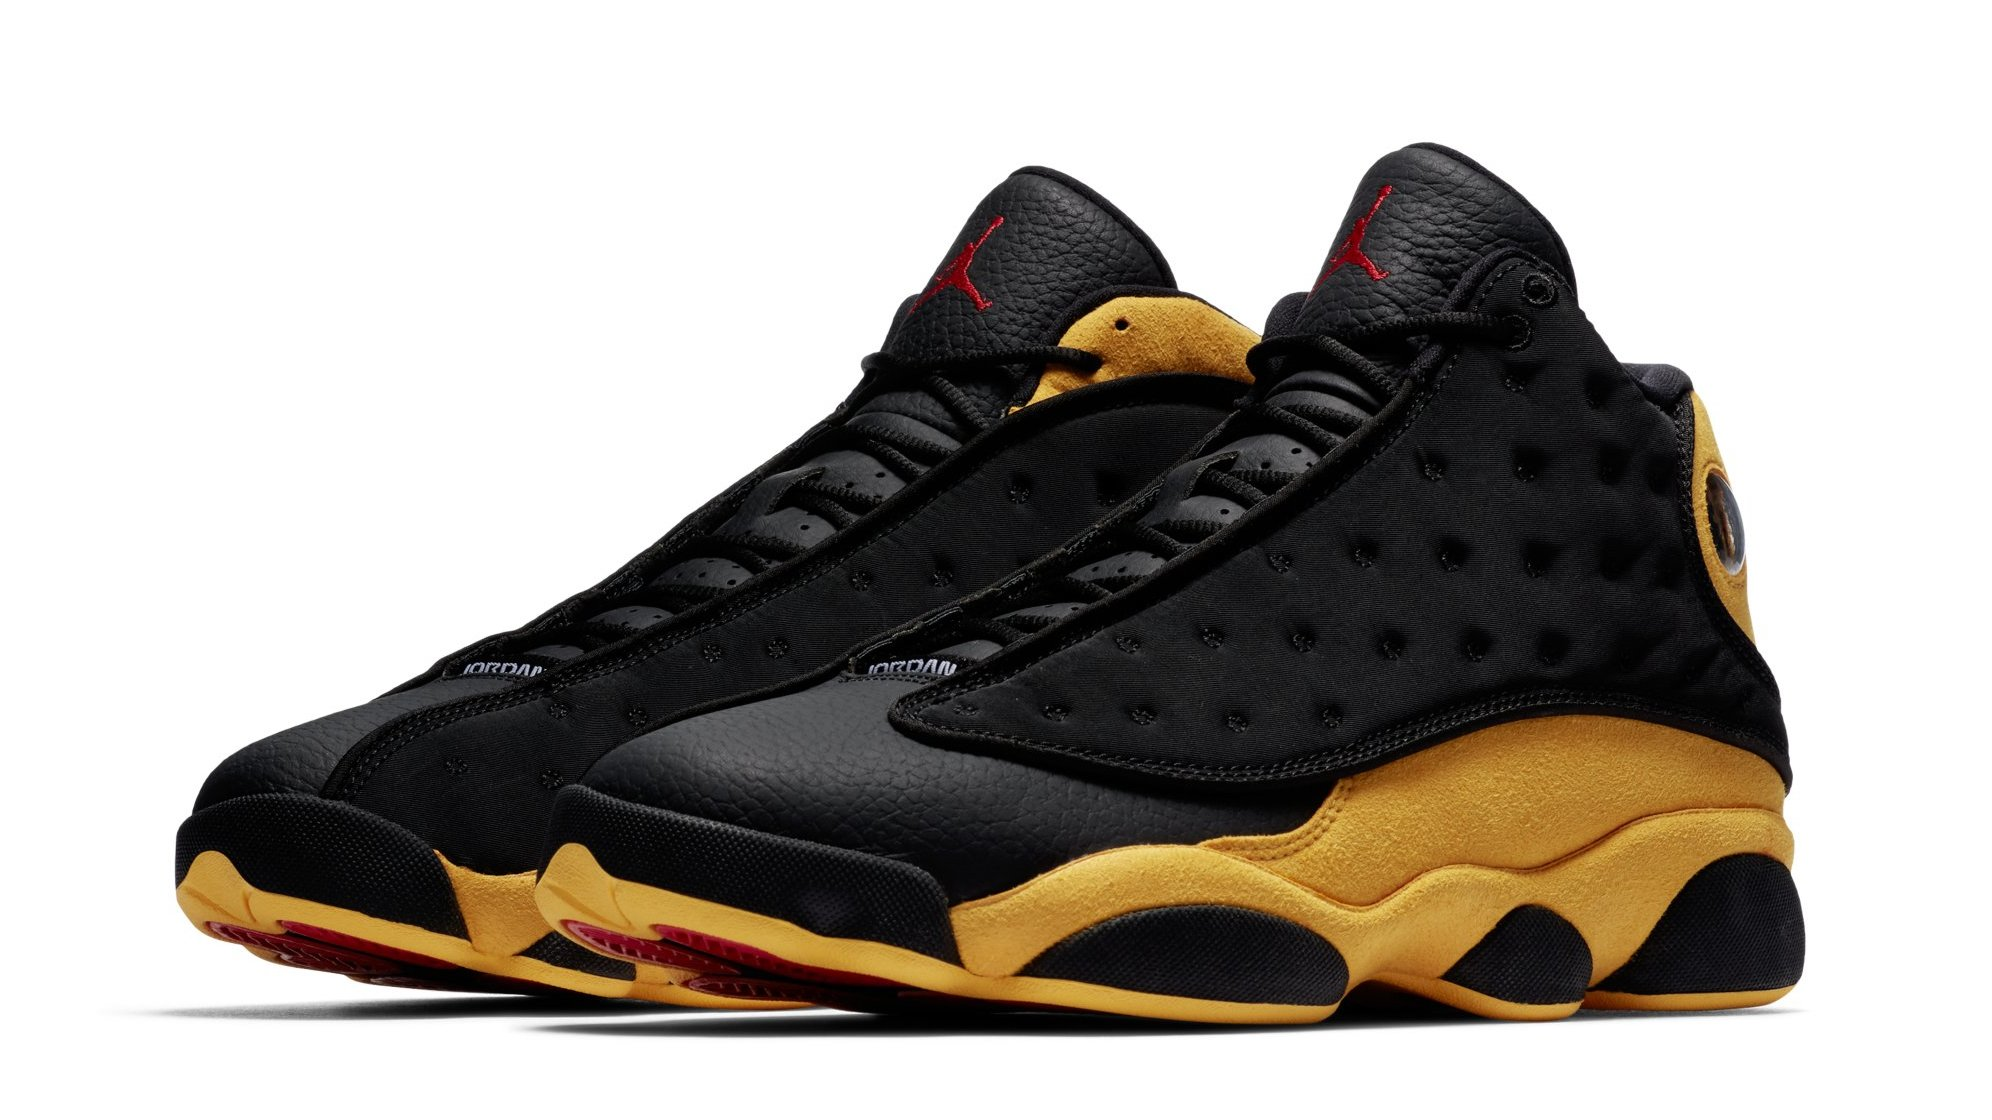 Air Jordan 13 Carmelo Anthony 'Class of 2002' Release